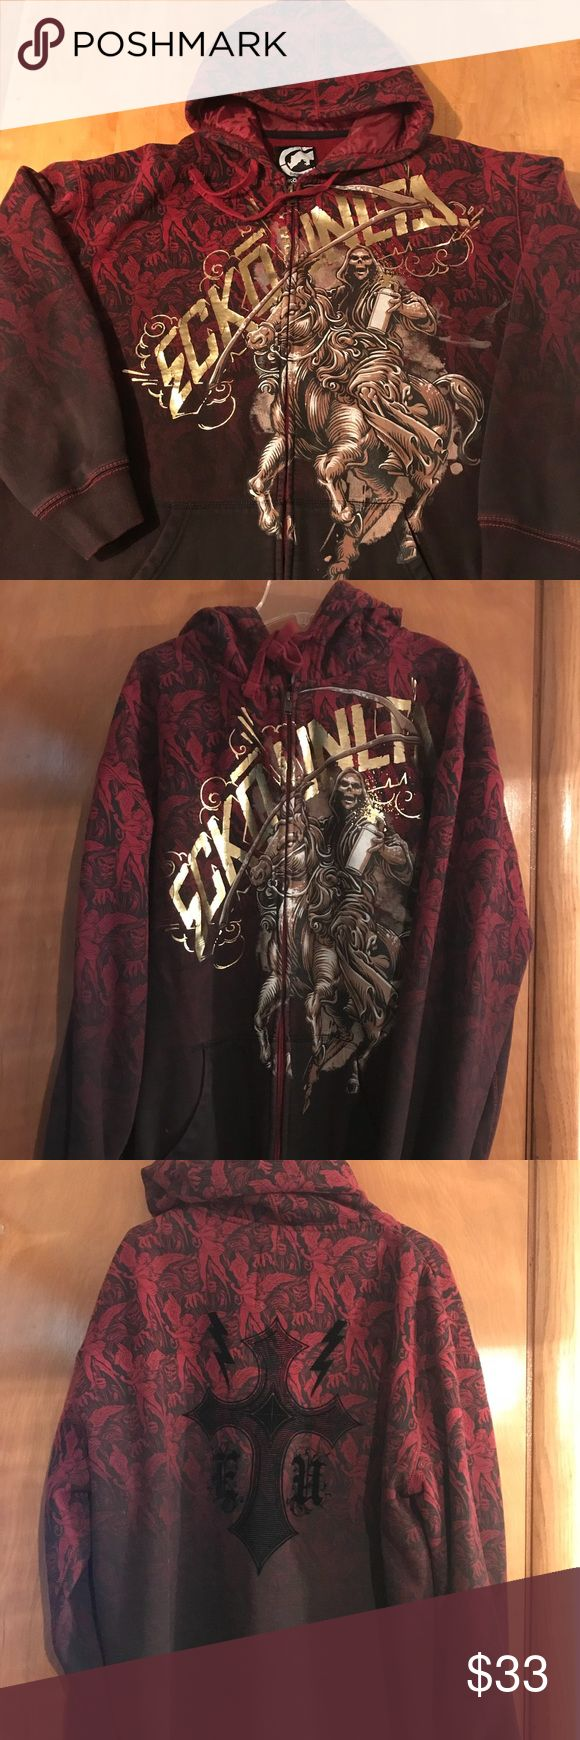 Ecko Hoodie Men's Ecko Unltd Hoodie. 80% Cotton 20% Polyester. Burgundy and black. Size 2XL. Lightly worn. Great graphic detail. Son took to camp so last name is written on tag, otherwise it's in perfect condition.   ⭐️ Non Smoking Home ⭐️ No Trades Ecko Unlimited Shirts Sweatshirts & Hoodies